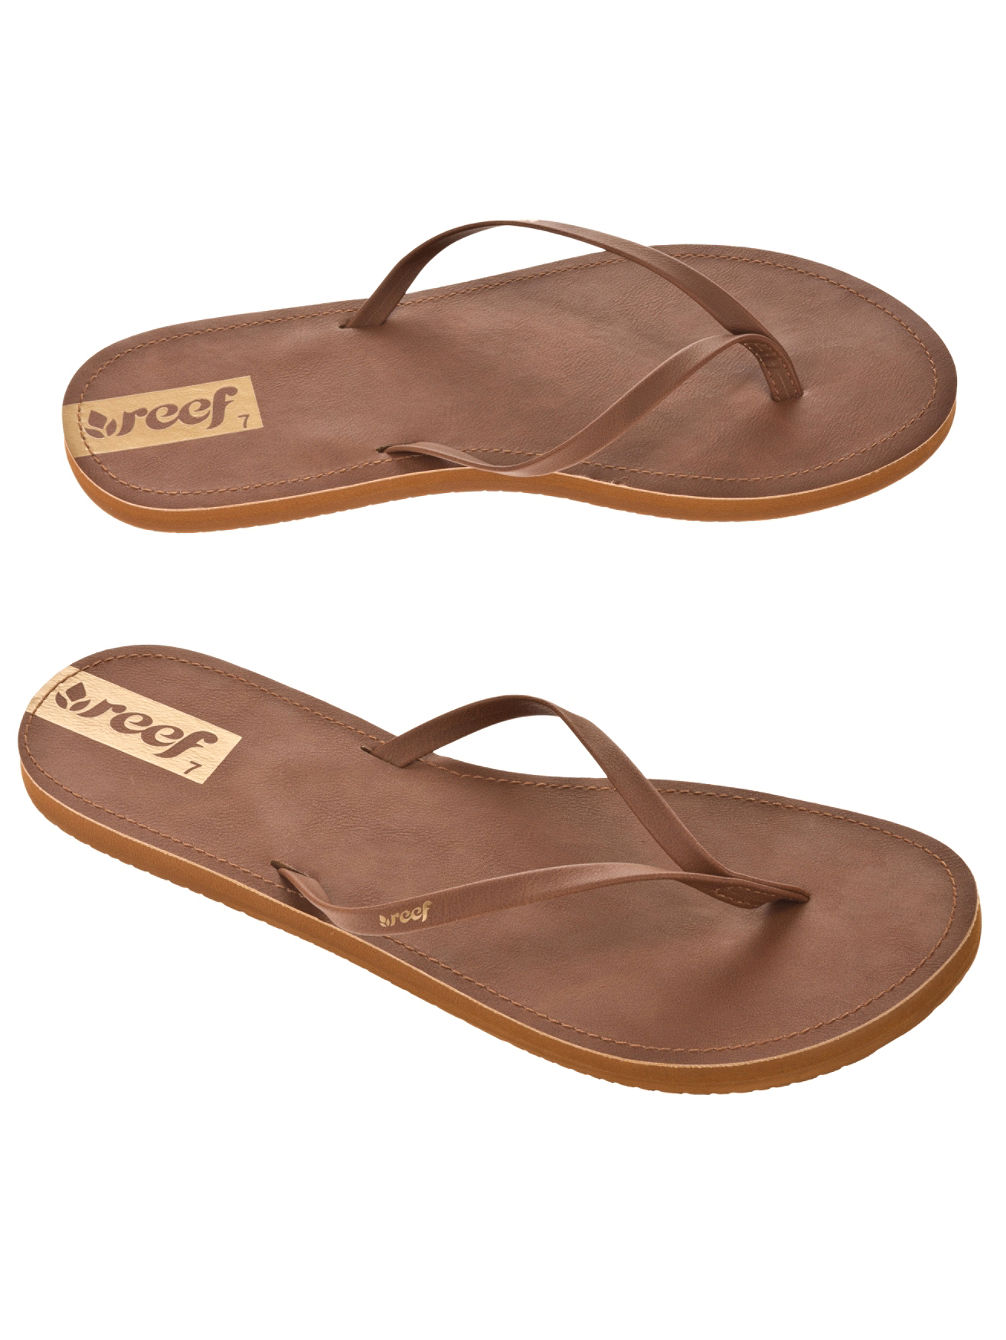 Downtown Sandals Women